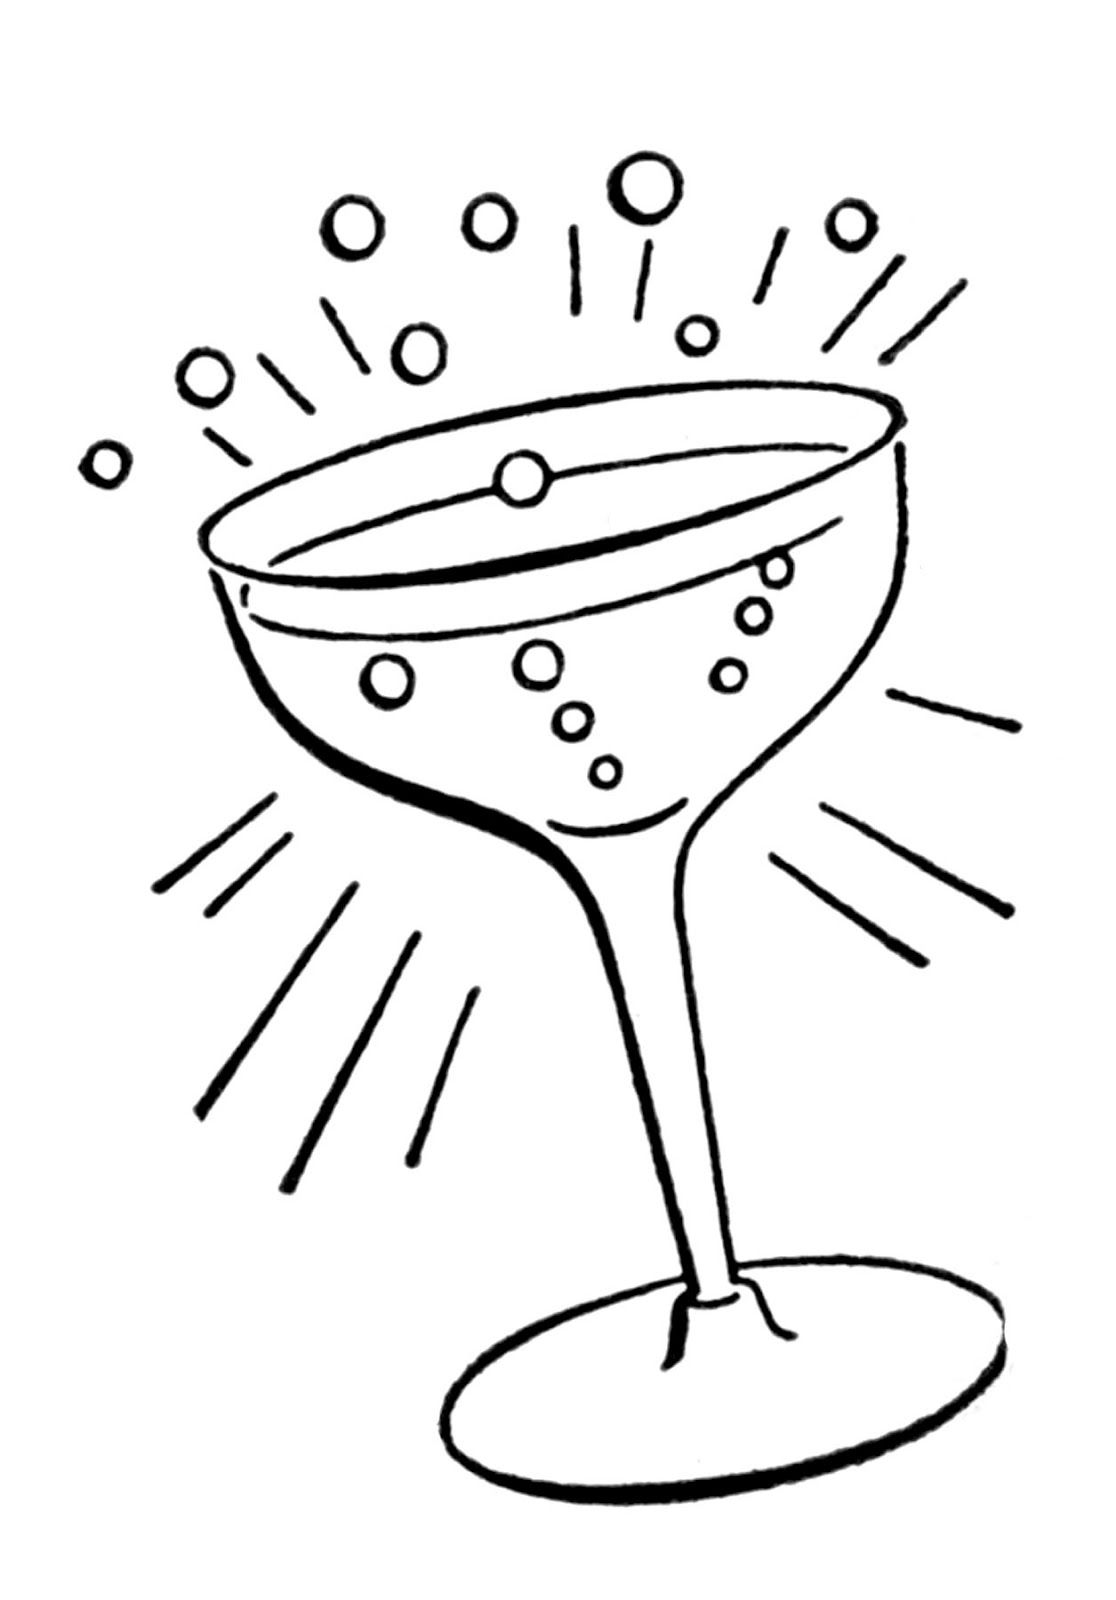 Cocktail clipart black and white graphic freeuse stock Retro Line Drawings - Cocktail Glass | Embroidery | Champagne images ... graphic freeuse stock